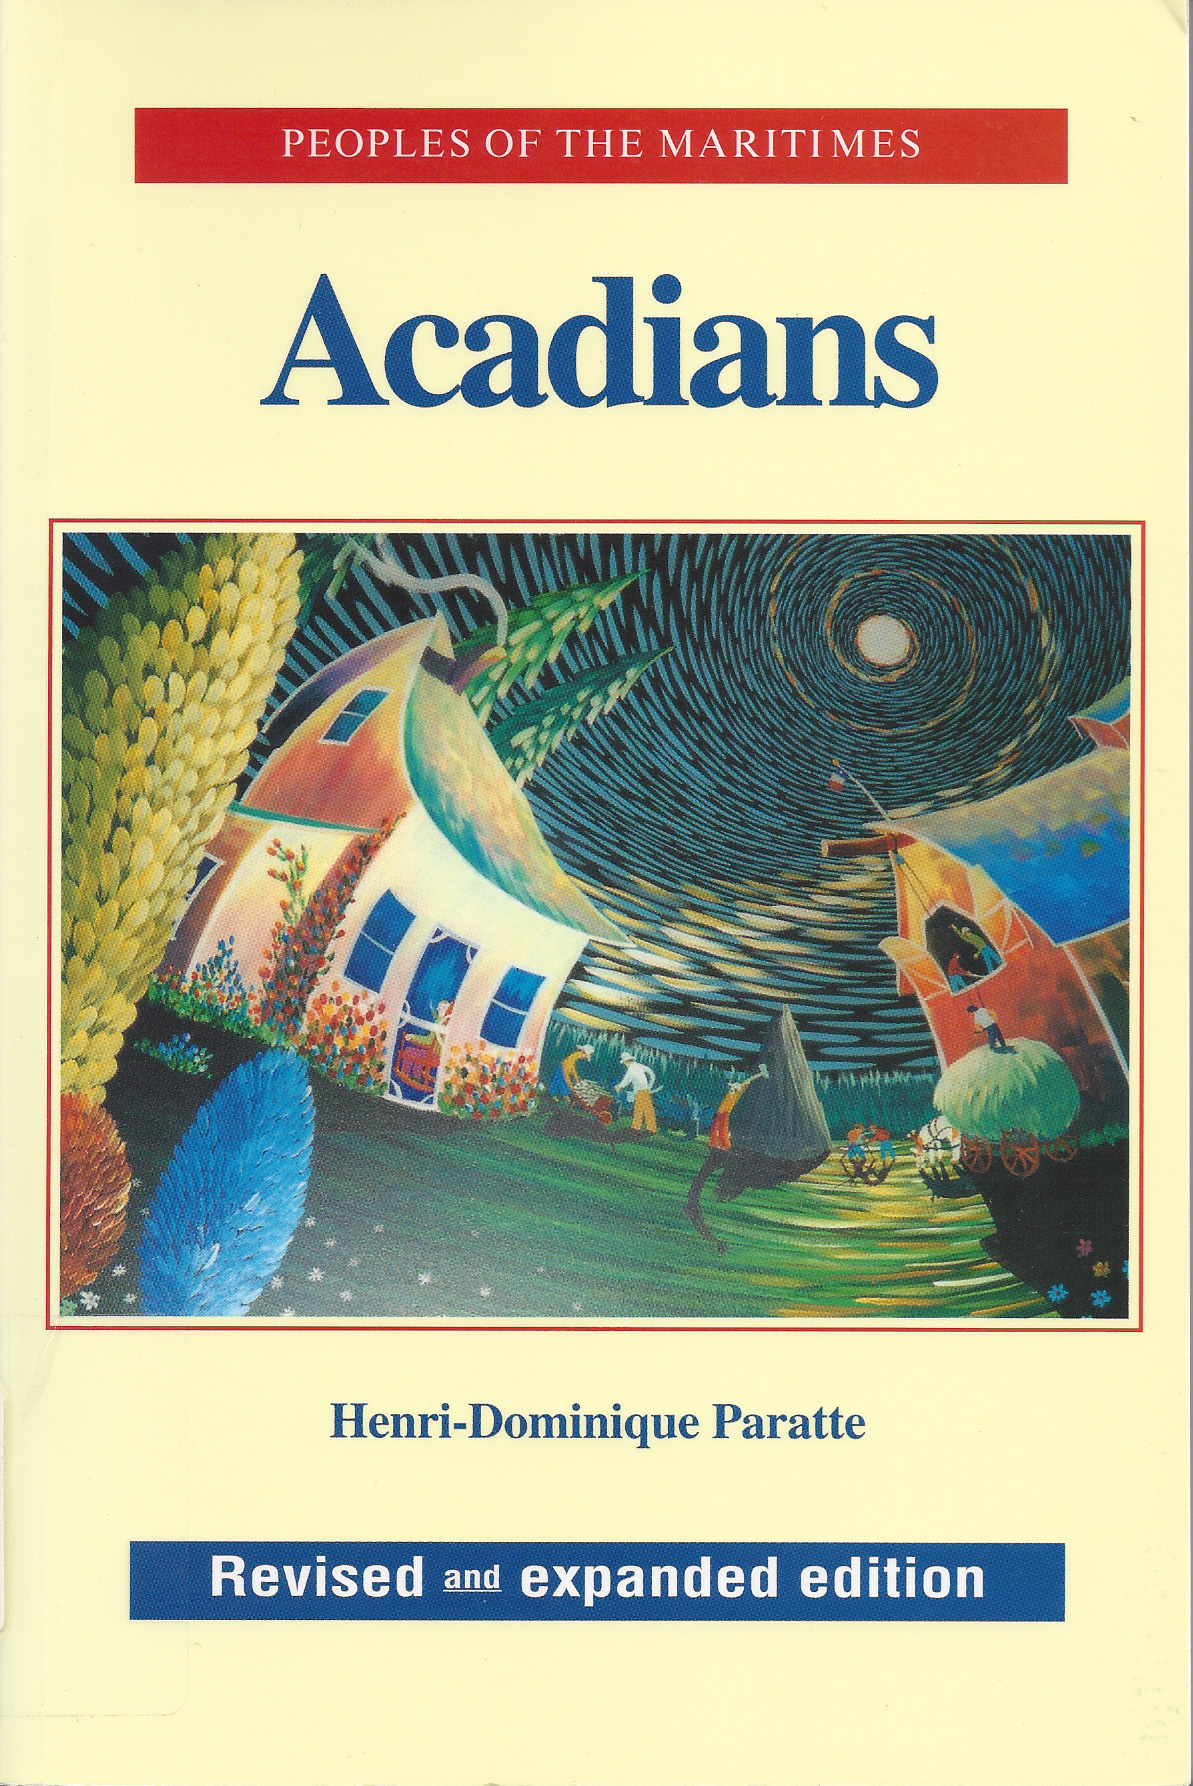 Peoples of the Maritimes: Acadians